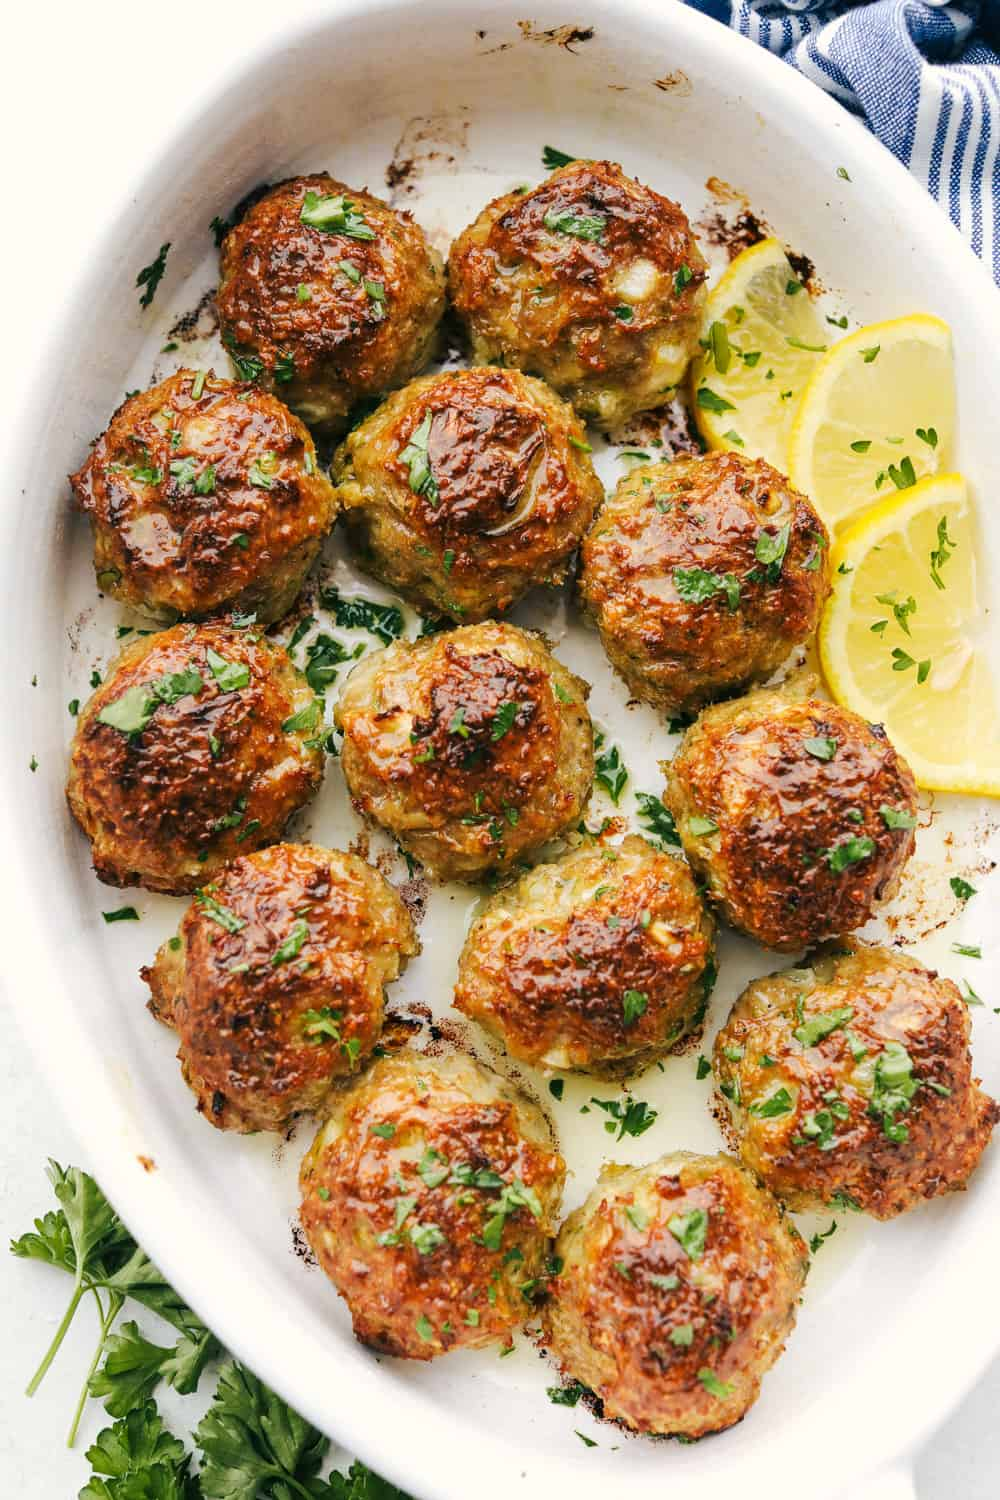 Delicious Baked Turkey Meatballs in a white dish.